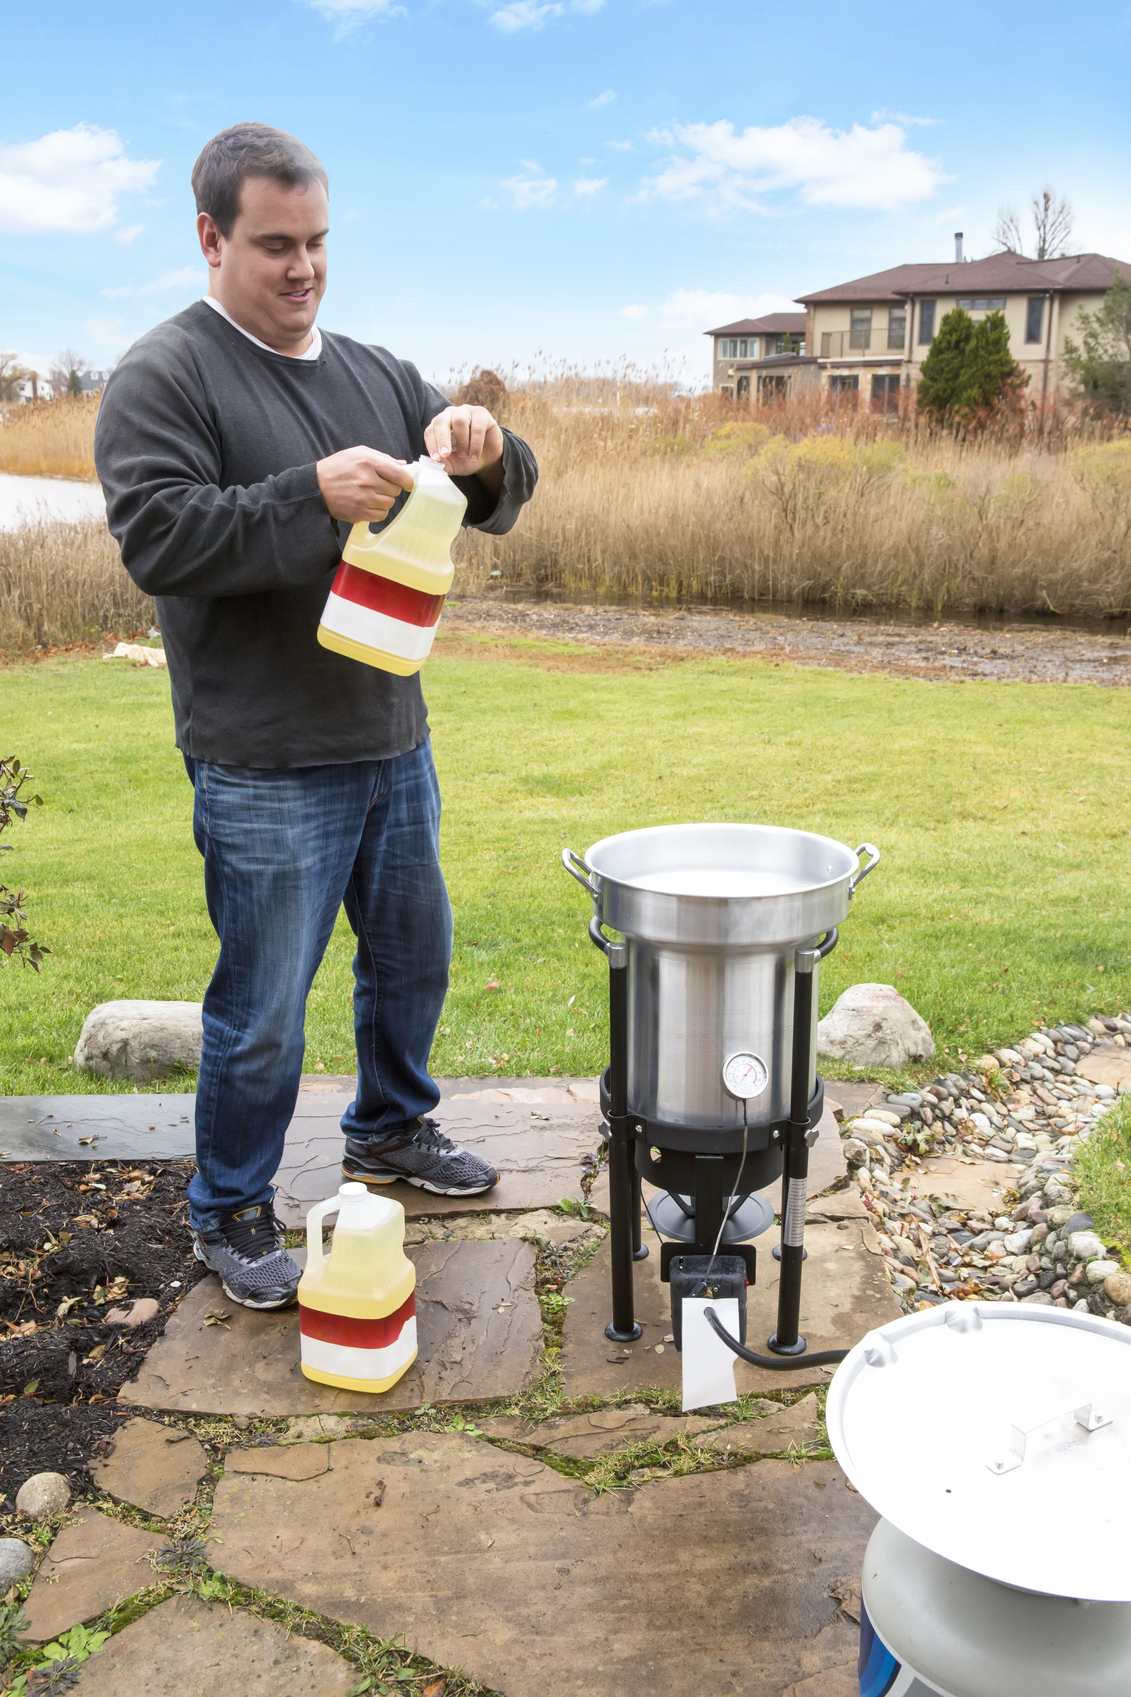 A man is getting ready to pour oil in outdoor deep fryer in preparation for deep frying his Thanksgiving turkey. Deep fried turkey is delicious but there is a danger of explosion or fire which is why it is always cooked outside. Shot with a Canon 5D Mark 3. rm